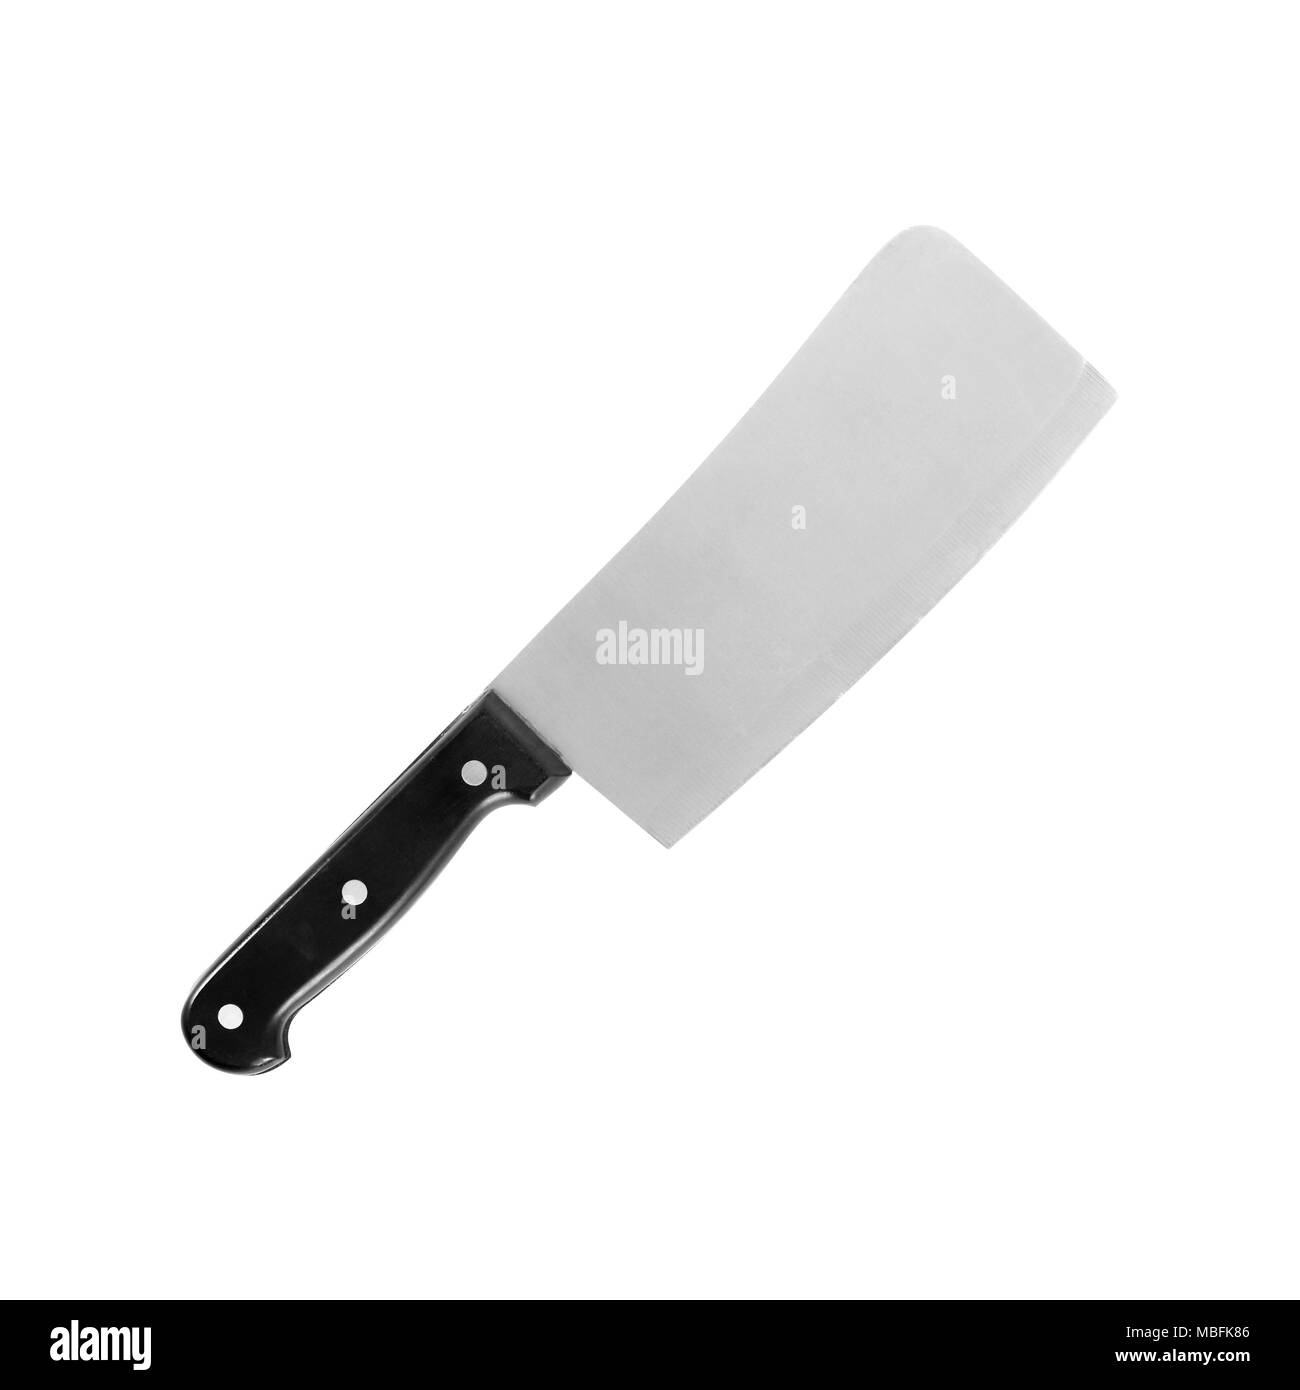 Kitchen accessories - Big kitchen knife isolated on a white background. - Stock Image